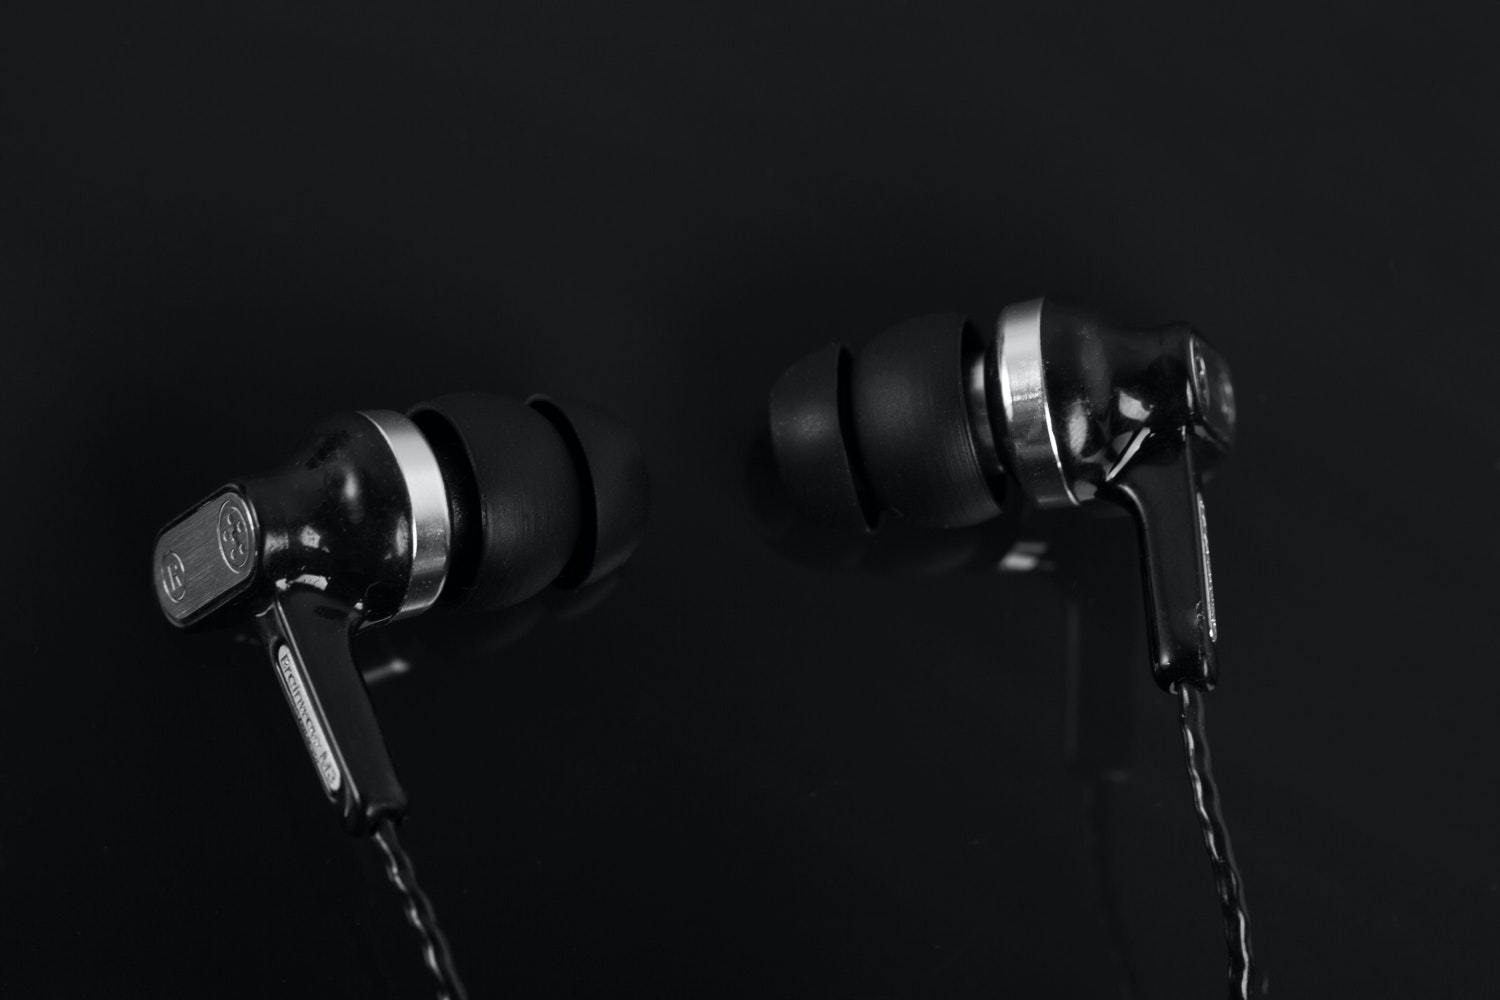 Brainwavz M3 Earphones